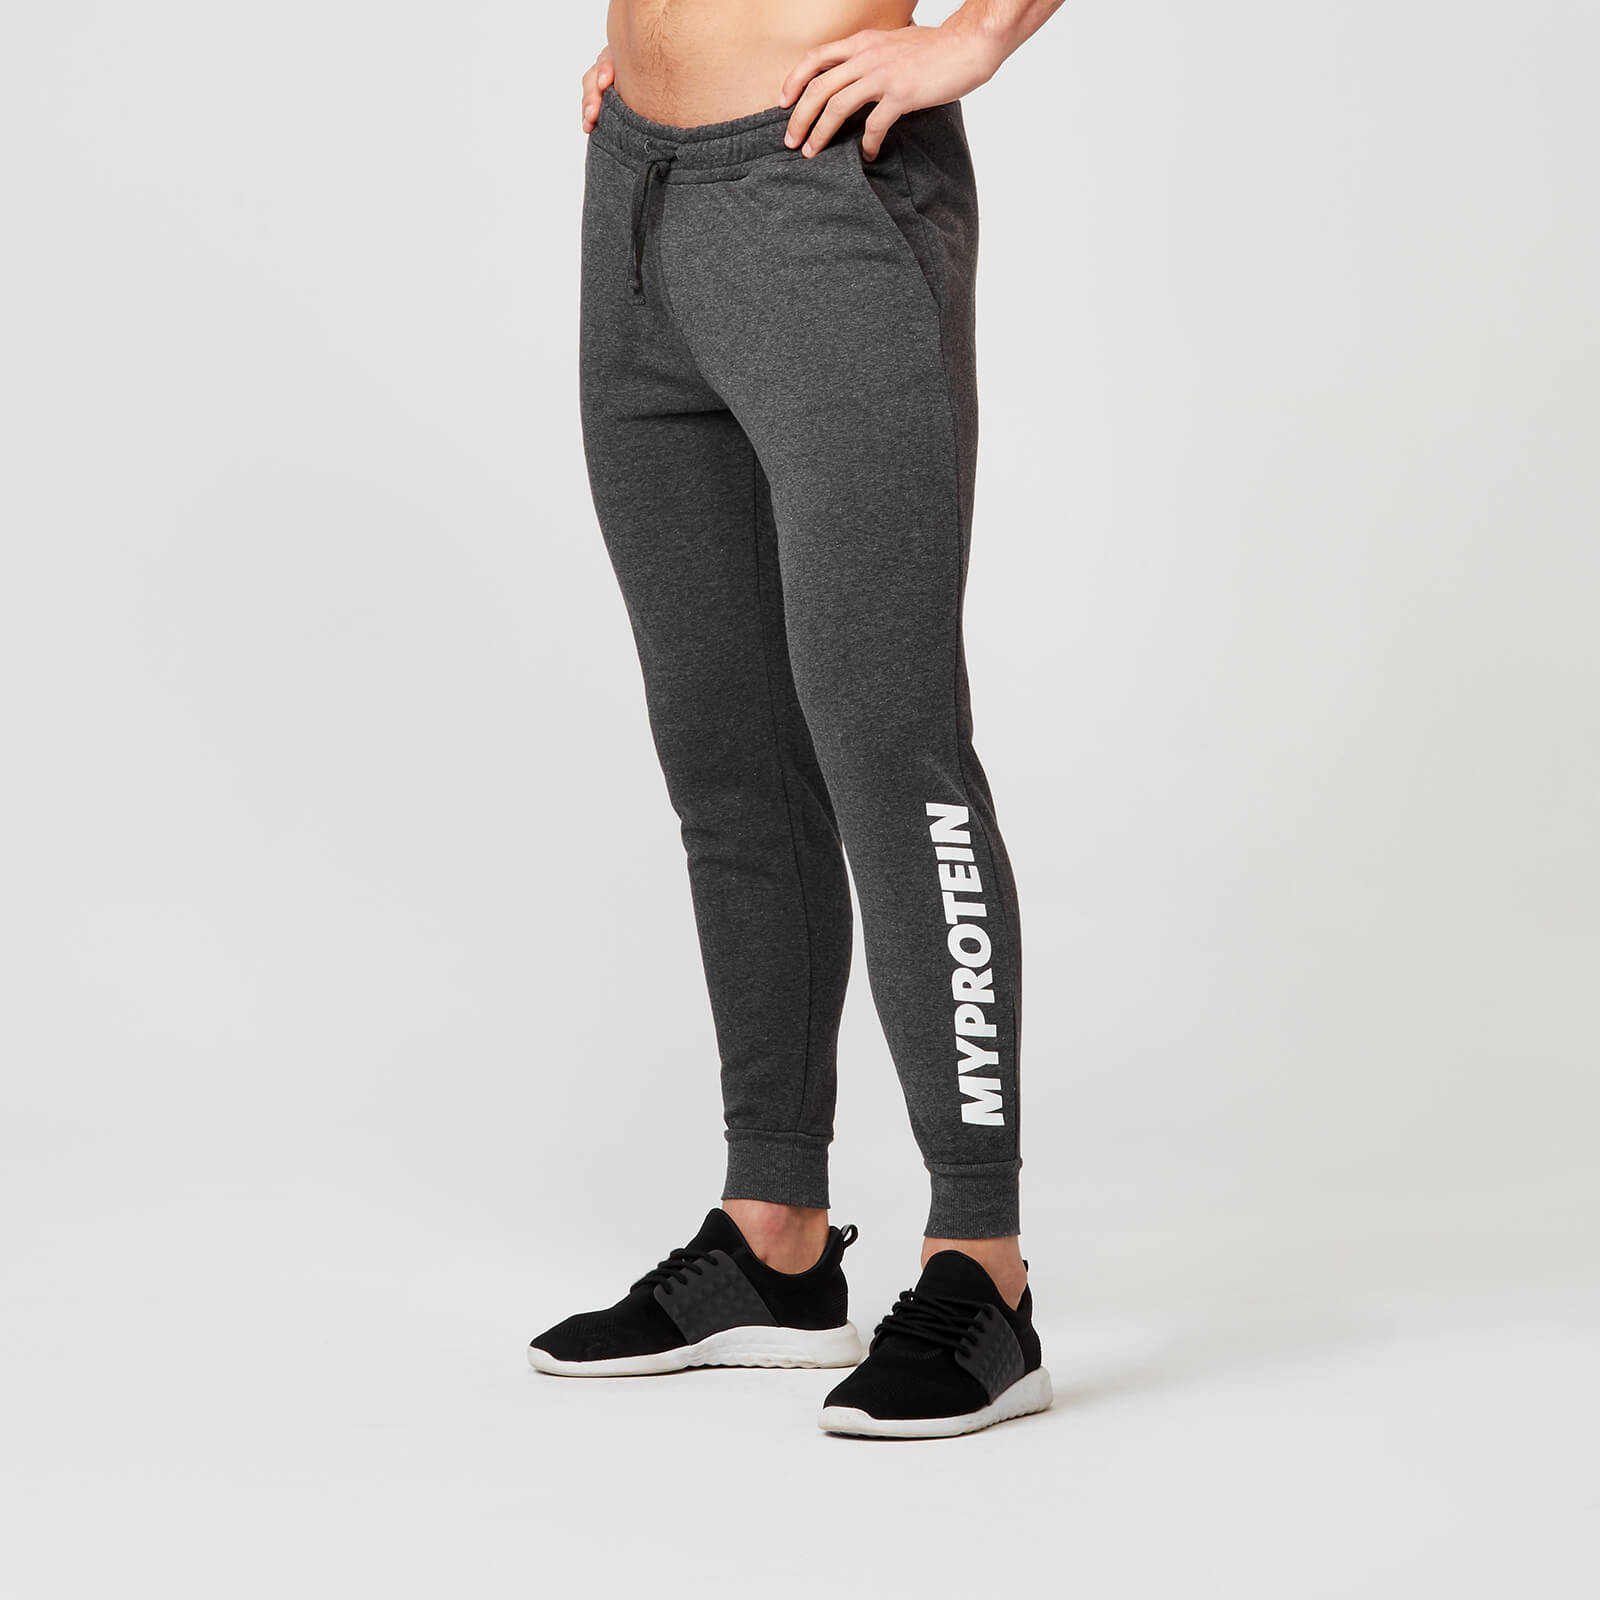 Myprotein Logo Joggers - Charcoal - S